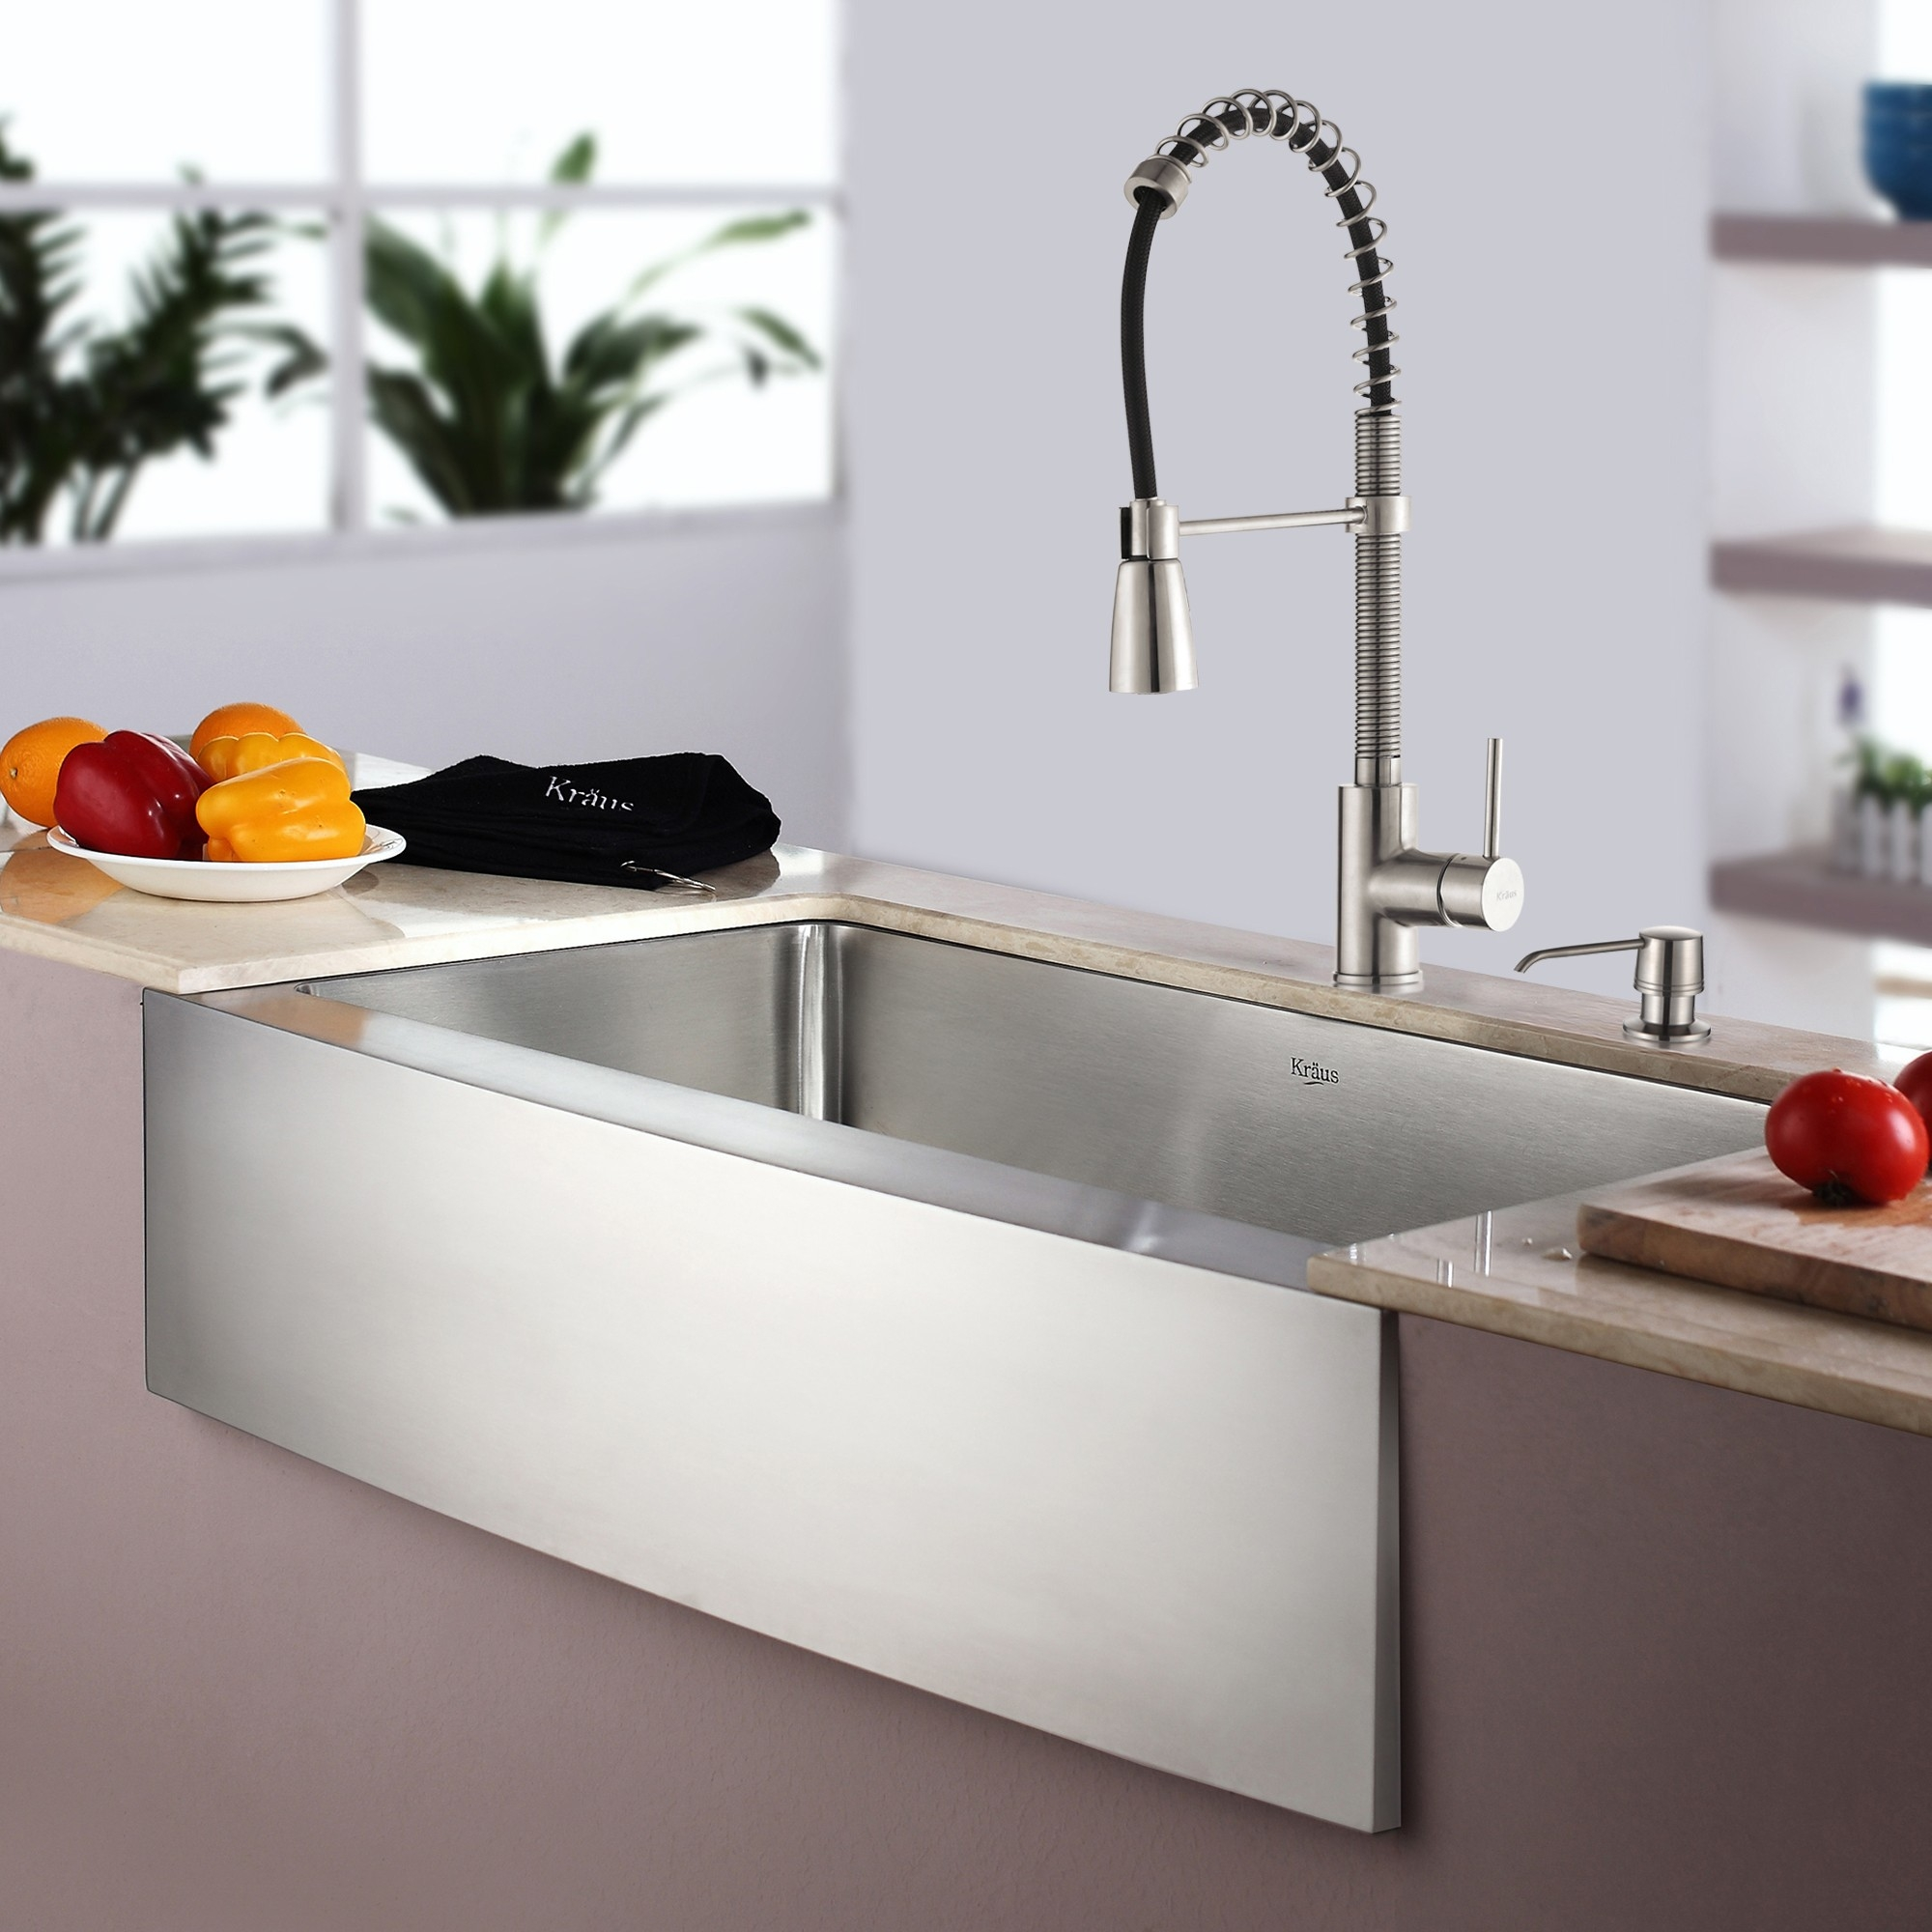 Ideas, kohler kitchen faucets with soap dispenser kohler kitchen faucets with soap dispenser stainless steel kitchen sink combination kraususa 2000 x 2000  .